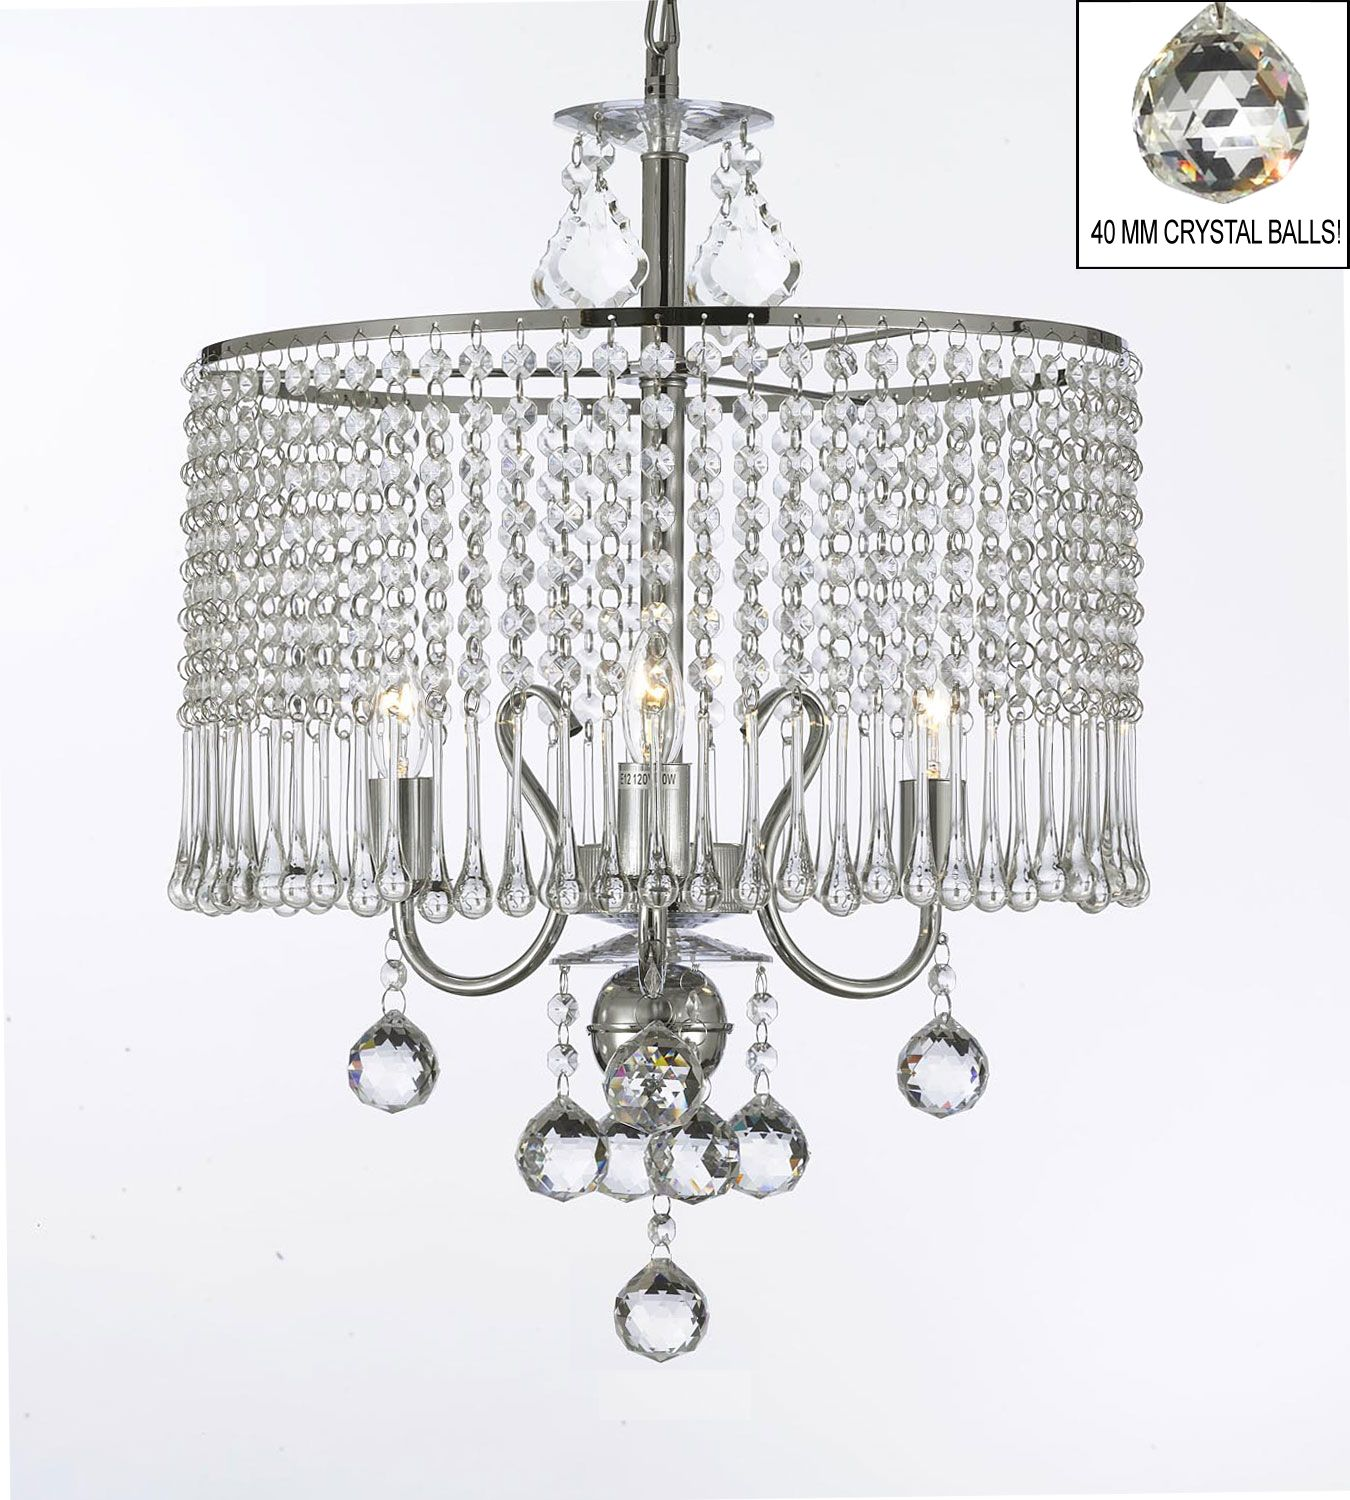 G7 B6 1000 3 Gallery Chandeliers Contemporary 3 light Crystal